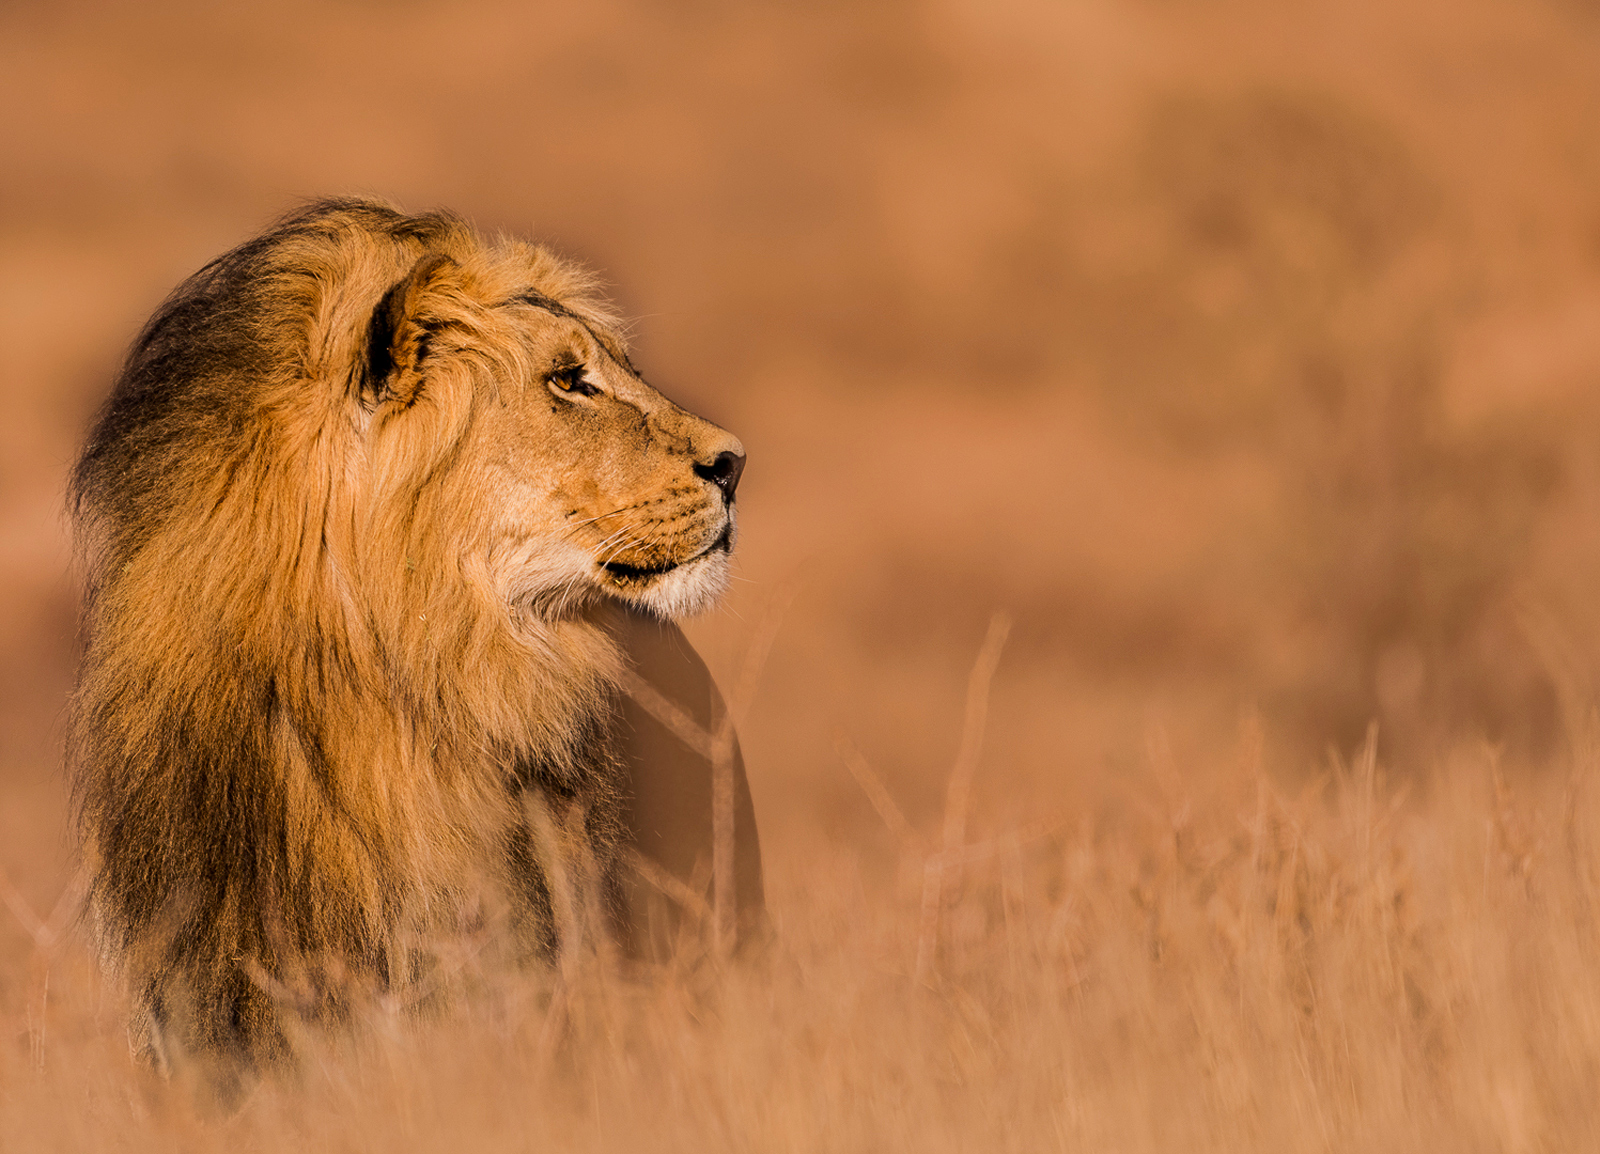 Male lion in the morning sunrise in Kgalagadi Transfrontier Park